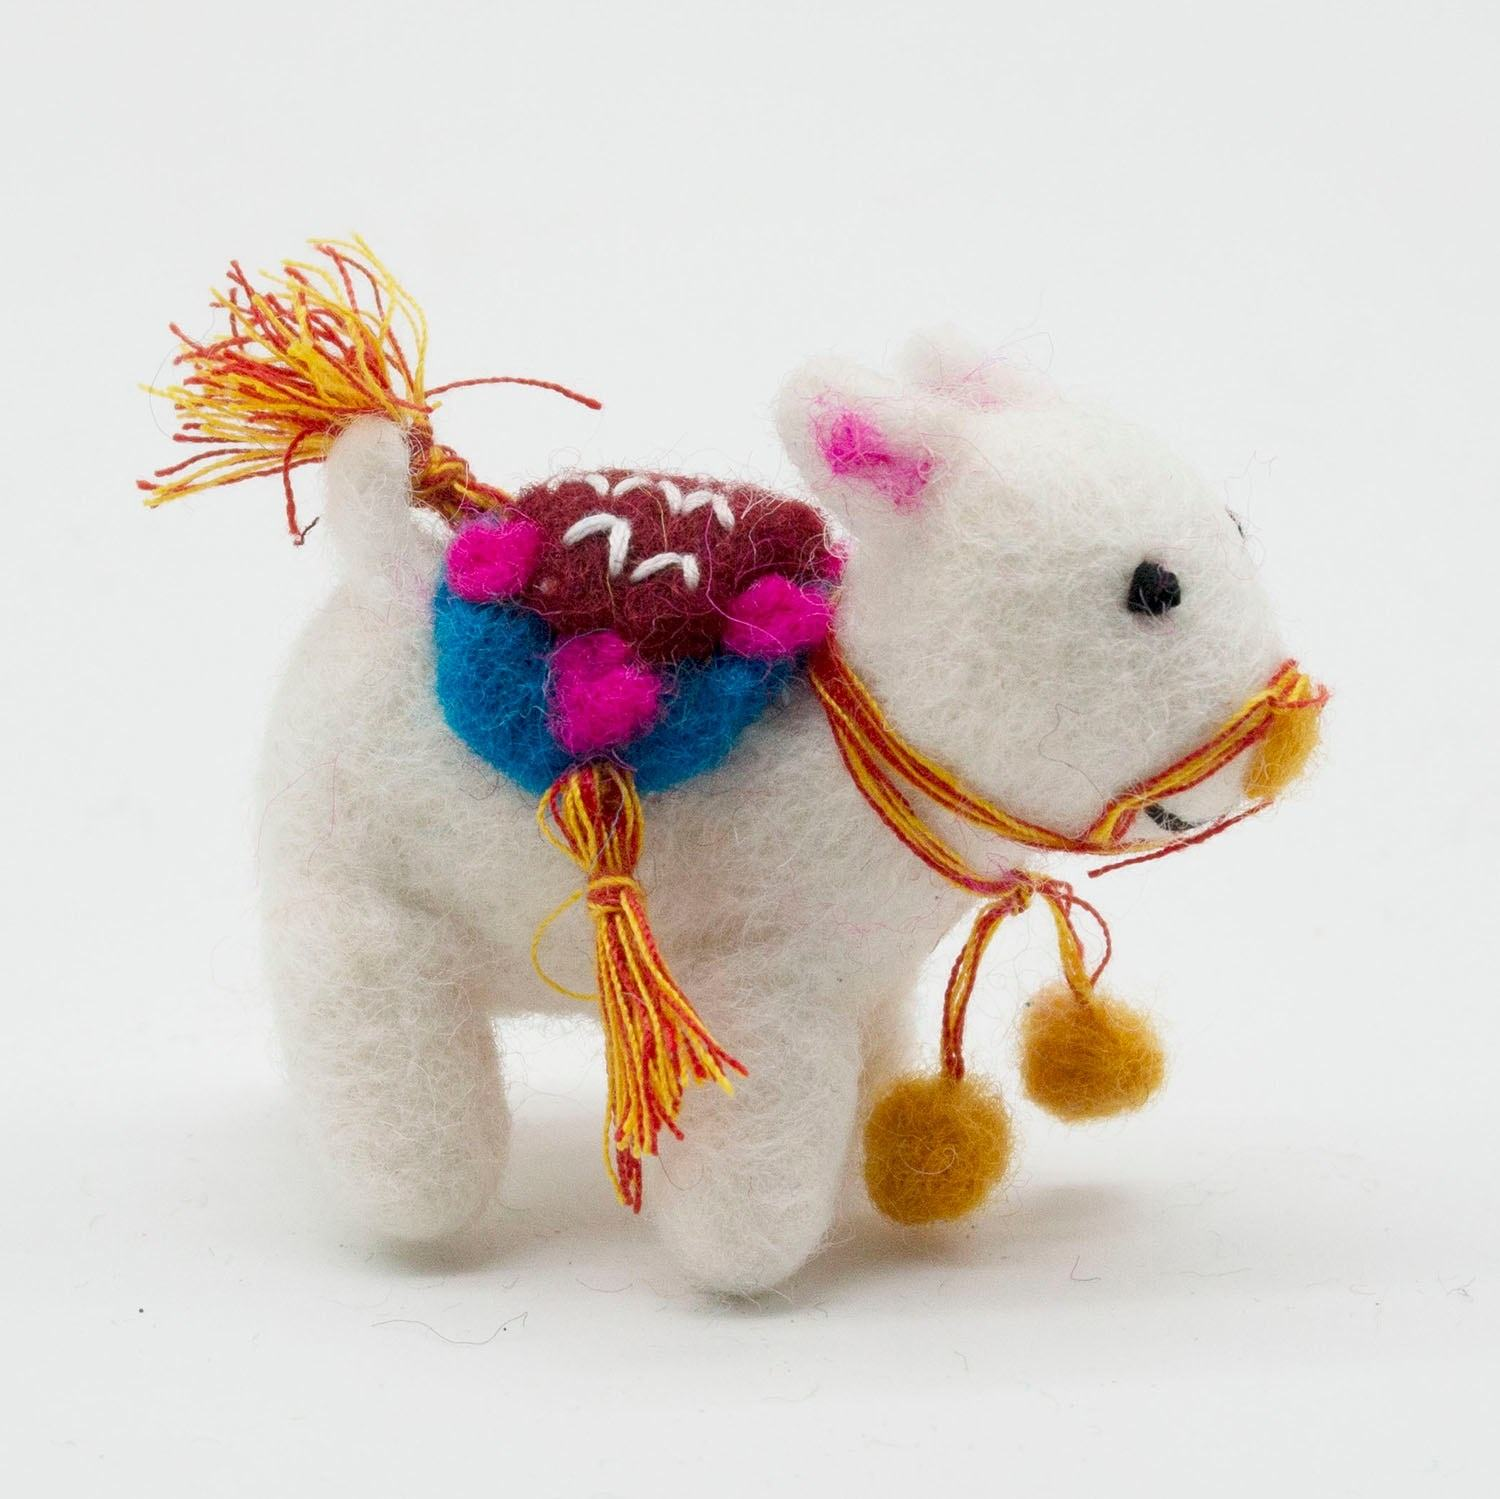 FCS-008 Felt Decorated Animal from Pure New Zealand Wool Christmas Accessories and Crafts Hand Felted by Women Artisan of Nepal